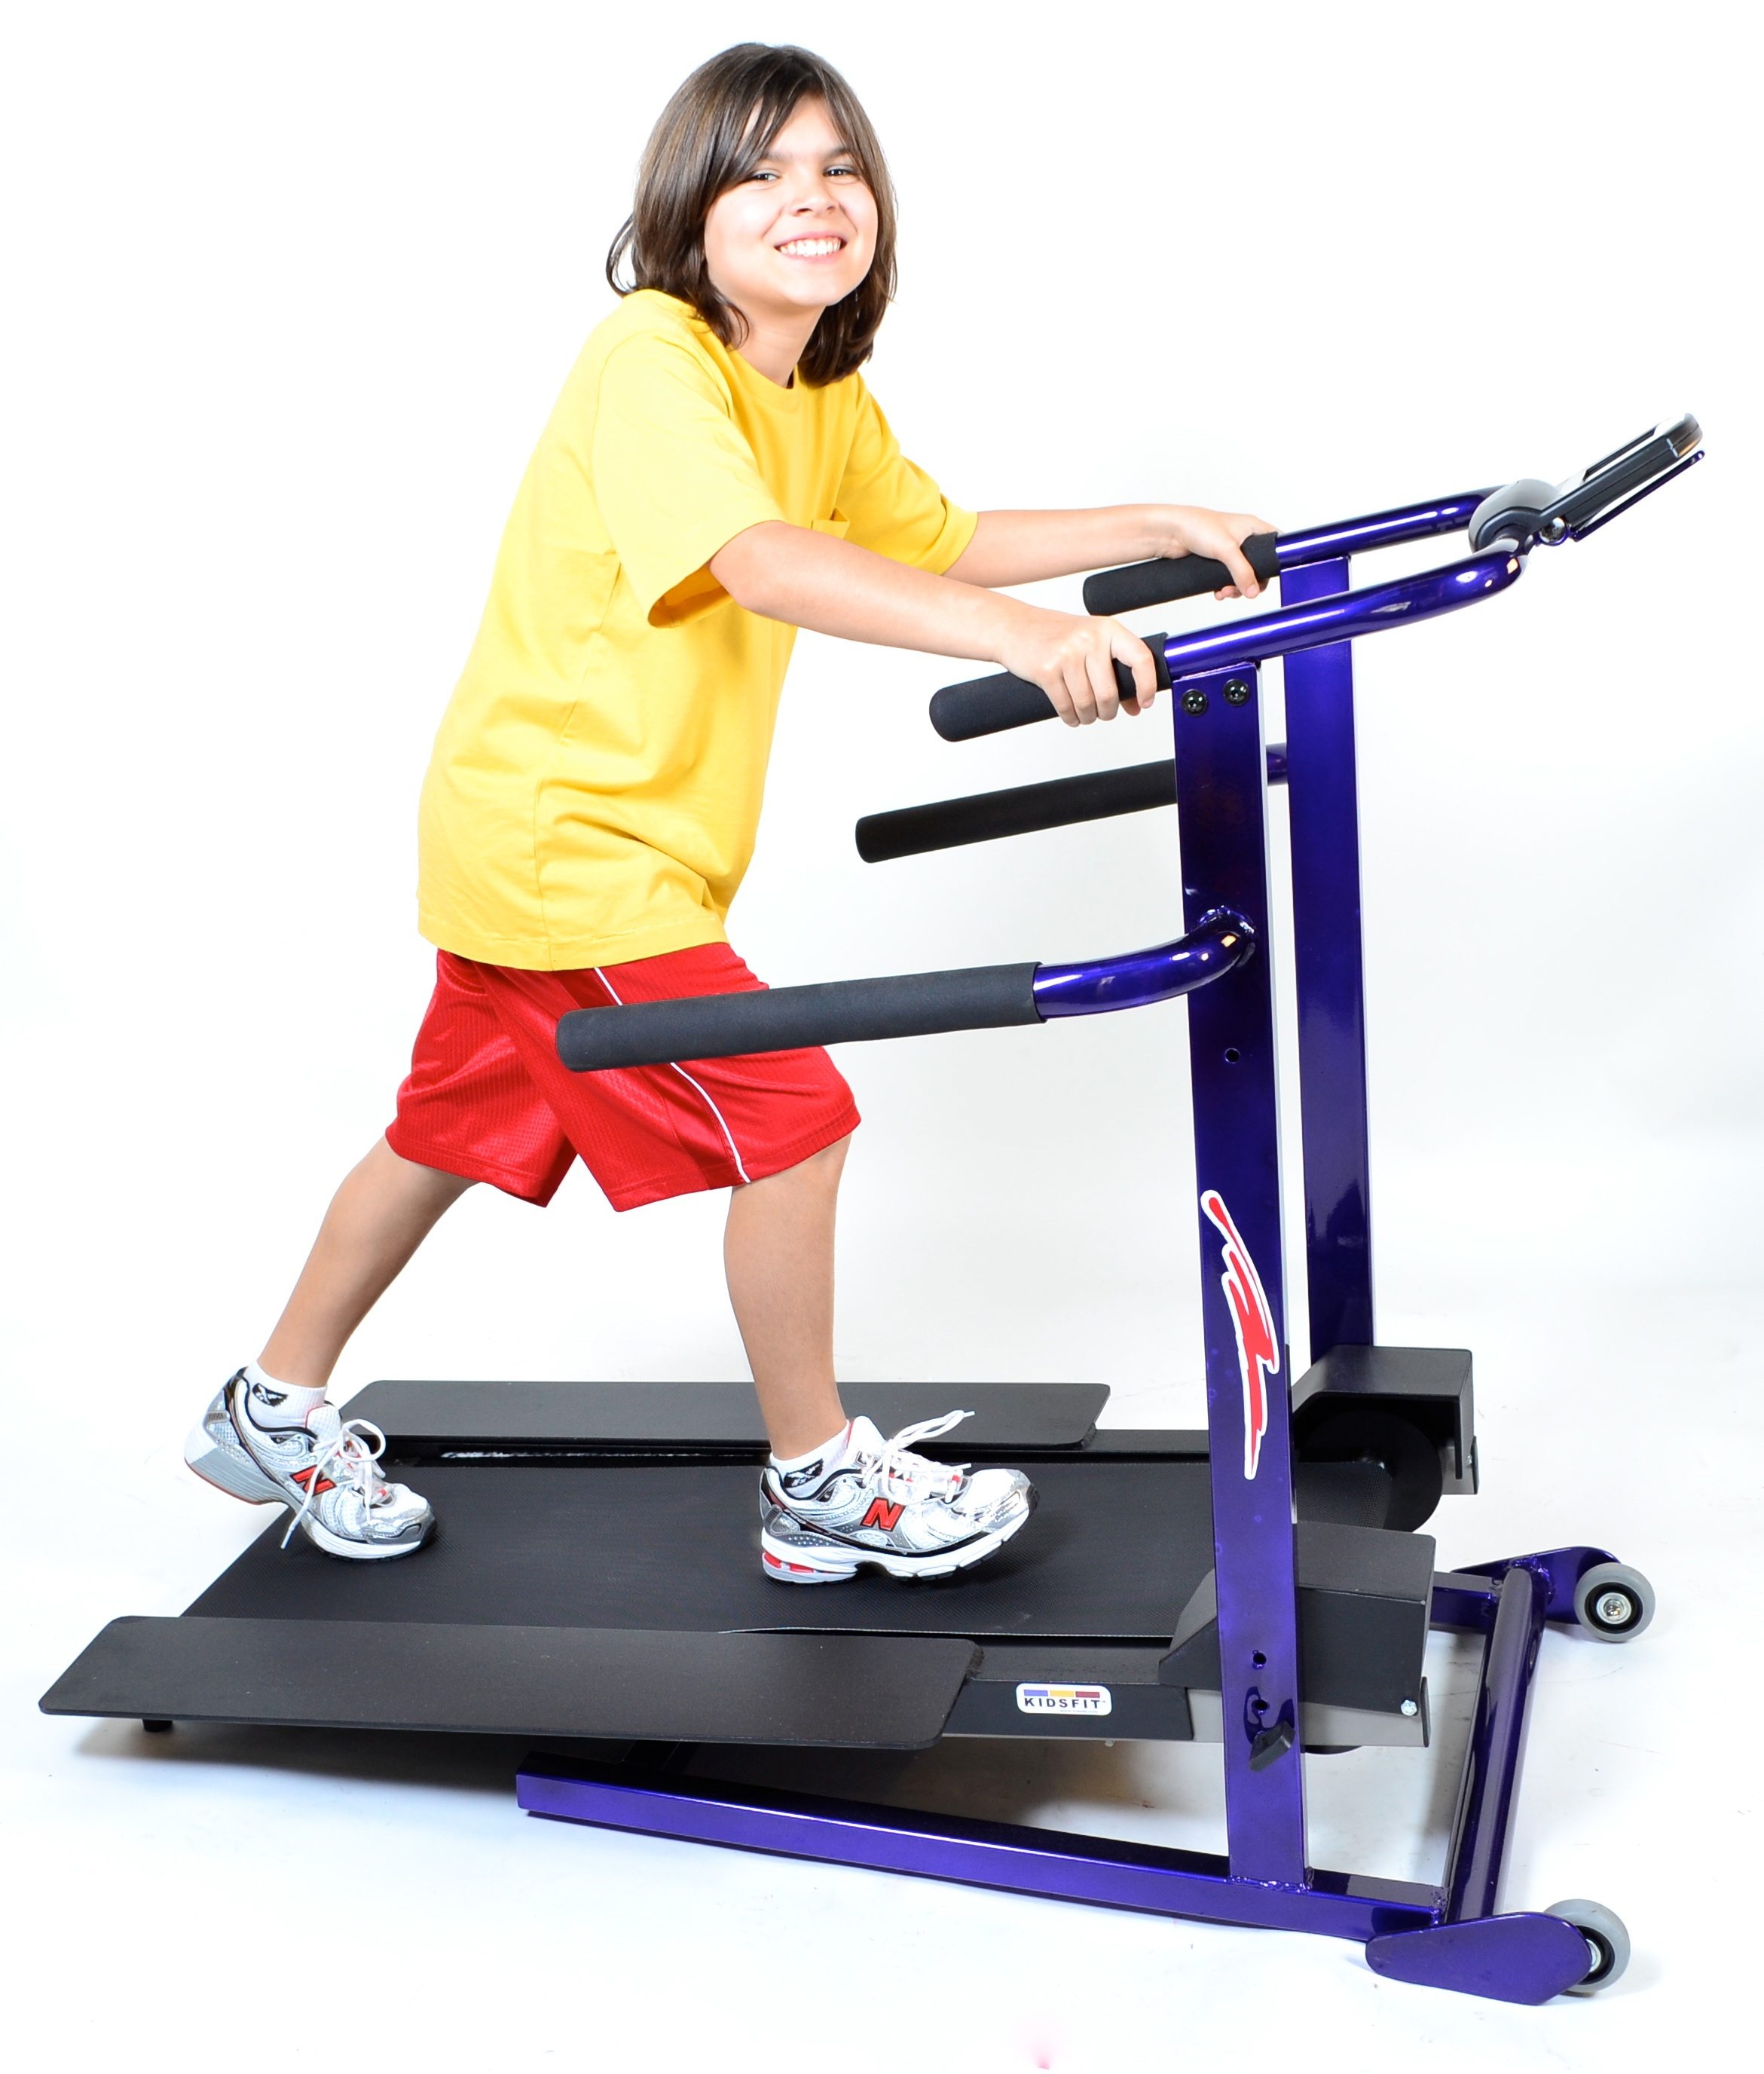 700_Cardio_Kids_Manual_Treadmill_.jpg